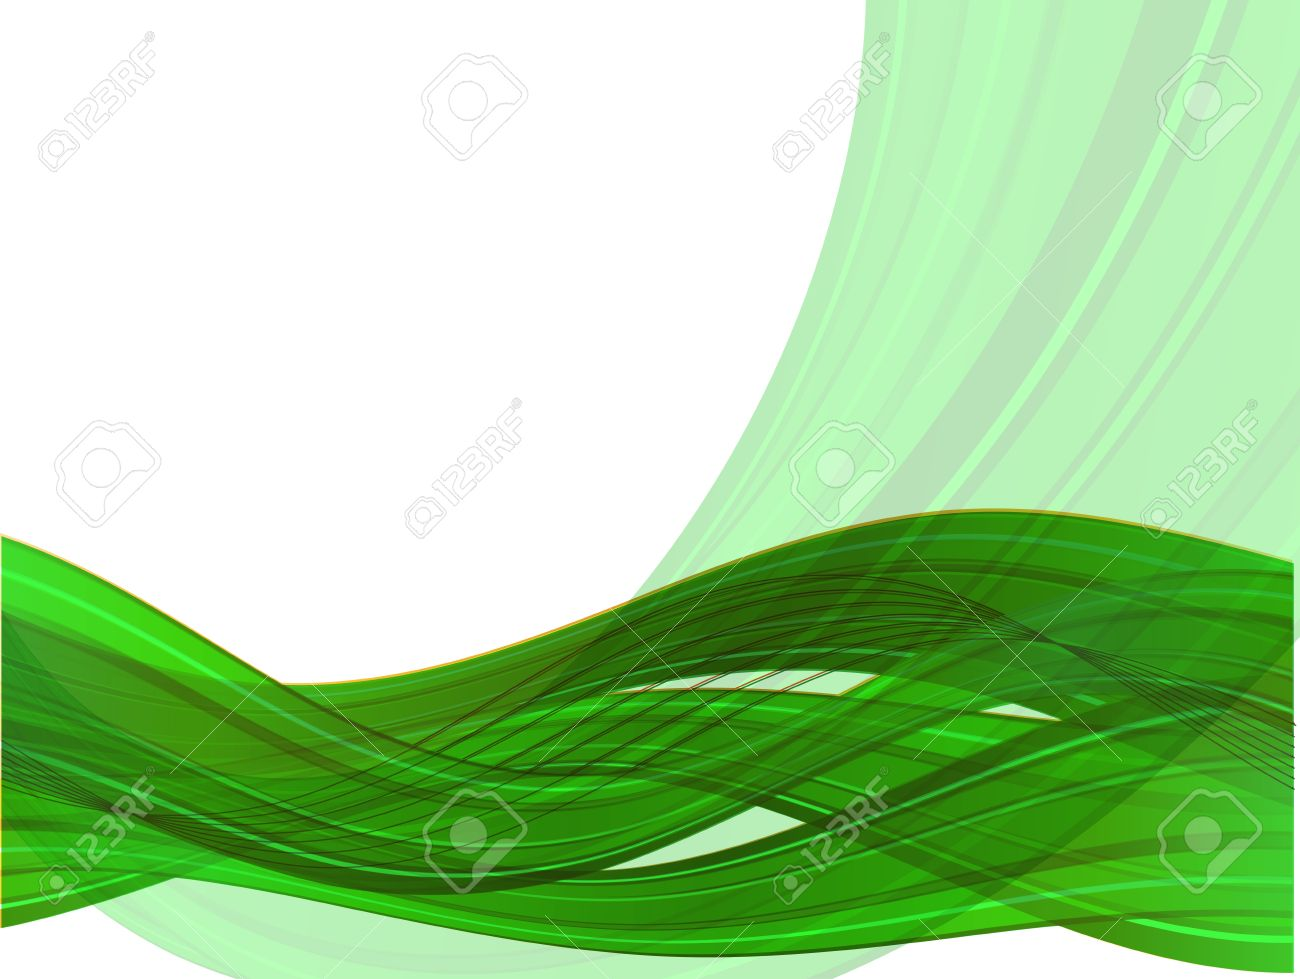 Abstract vector background with color waves  eps10 Stock Vector - 12486825